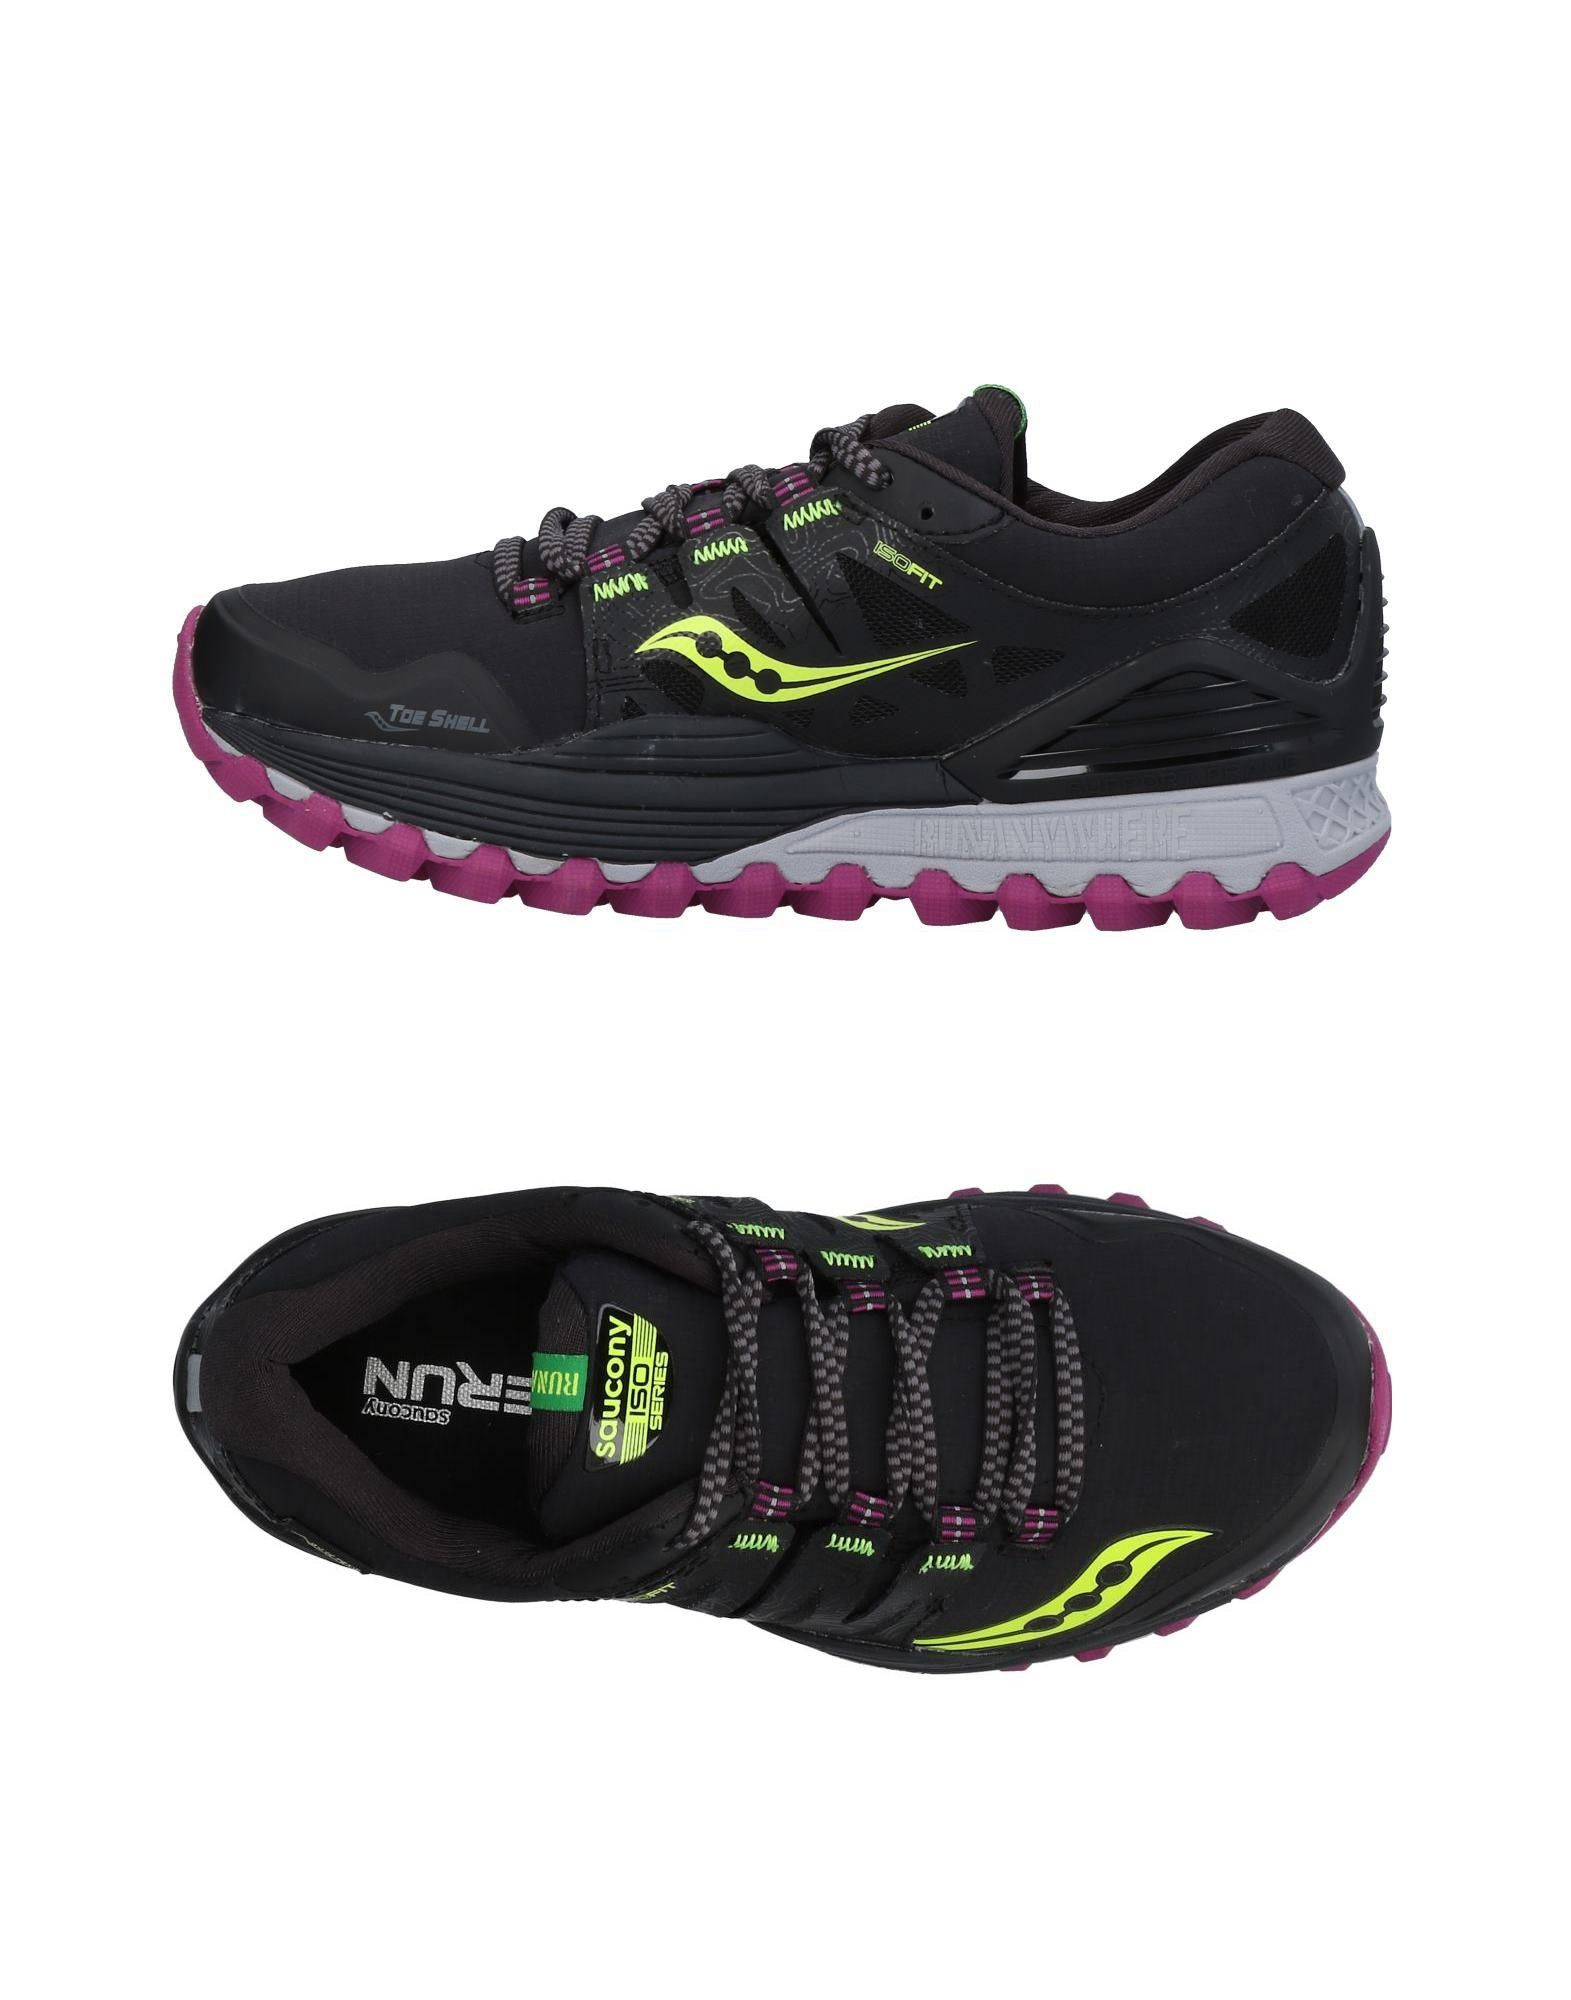 Moda Sneakers Saucony Donna Donna Saucony - 11430706MD 48ec50